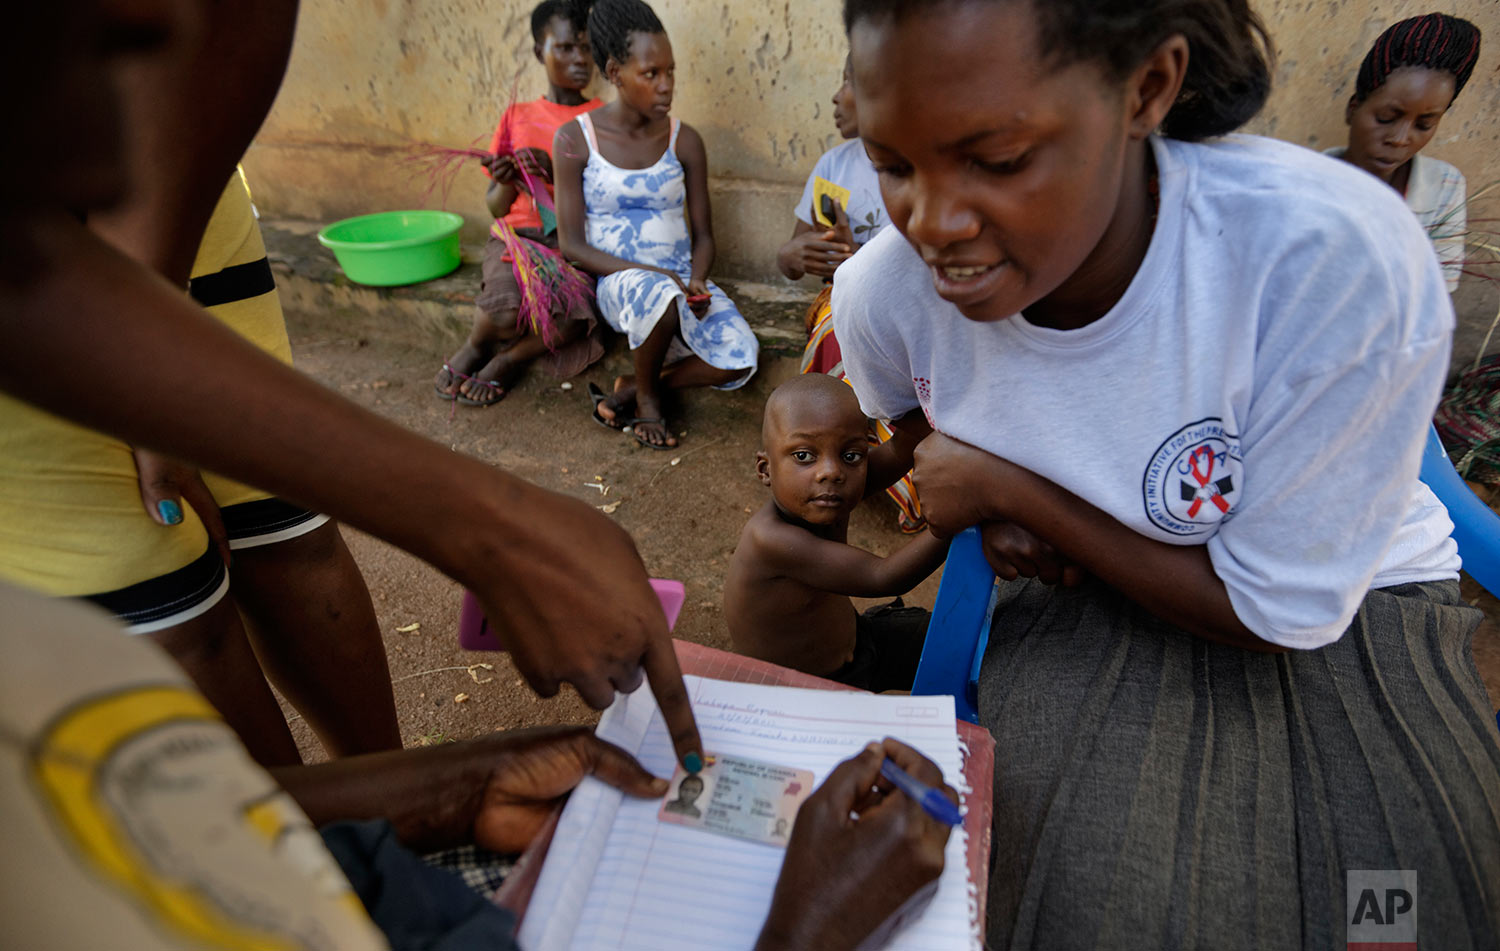 In this Thursday, June 1, 2017 photo, Felista Namotovu, 26, right, gives the details of the birth of her son, Reyman Lubega, 3, center, to health worker Josephine Nakachwa, as Nakachwa goes door-to-door to check if parents have registered the births of their children, in the village of Kifuuta, Uganda. (AP Photo/Ben Curtis)